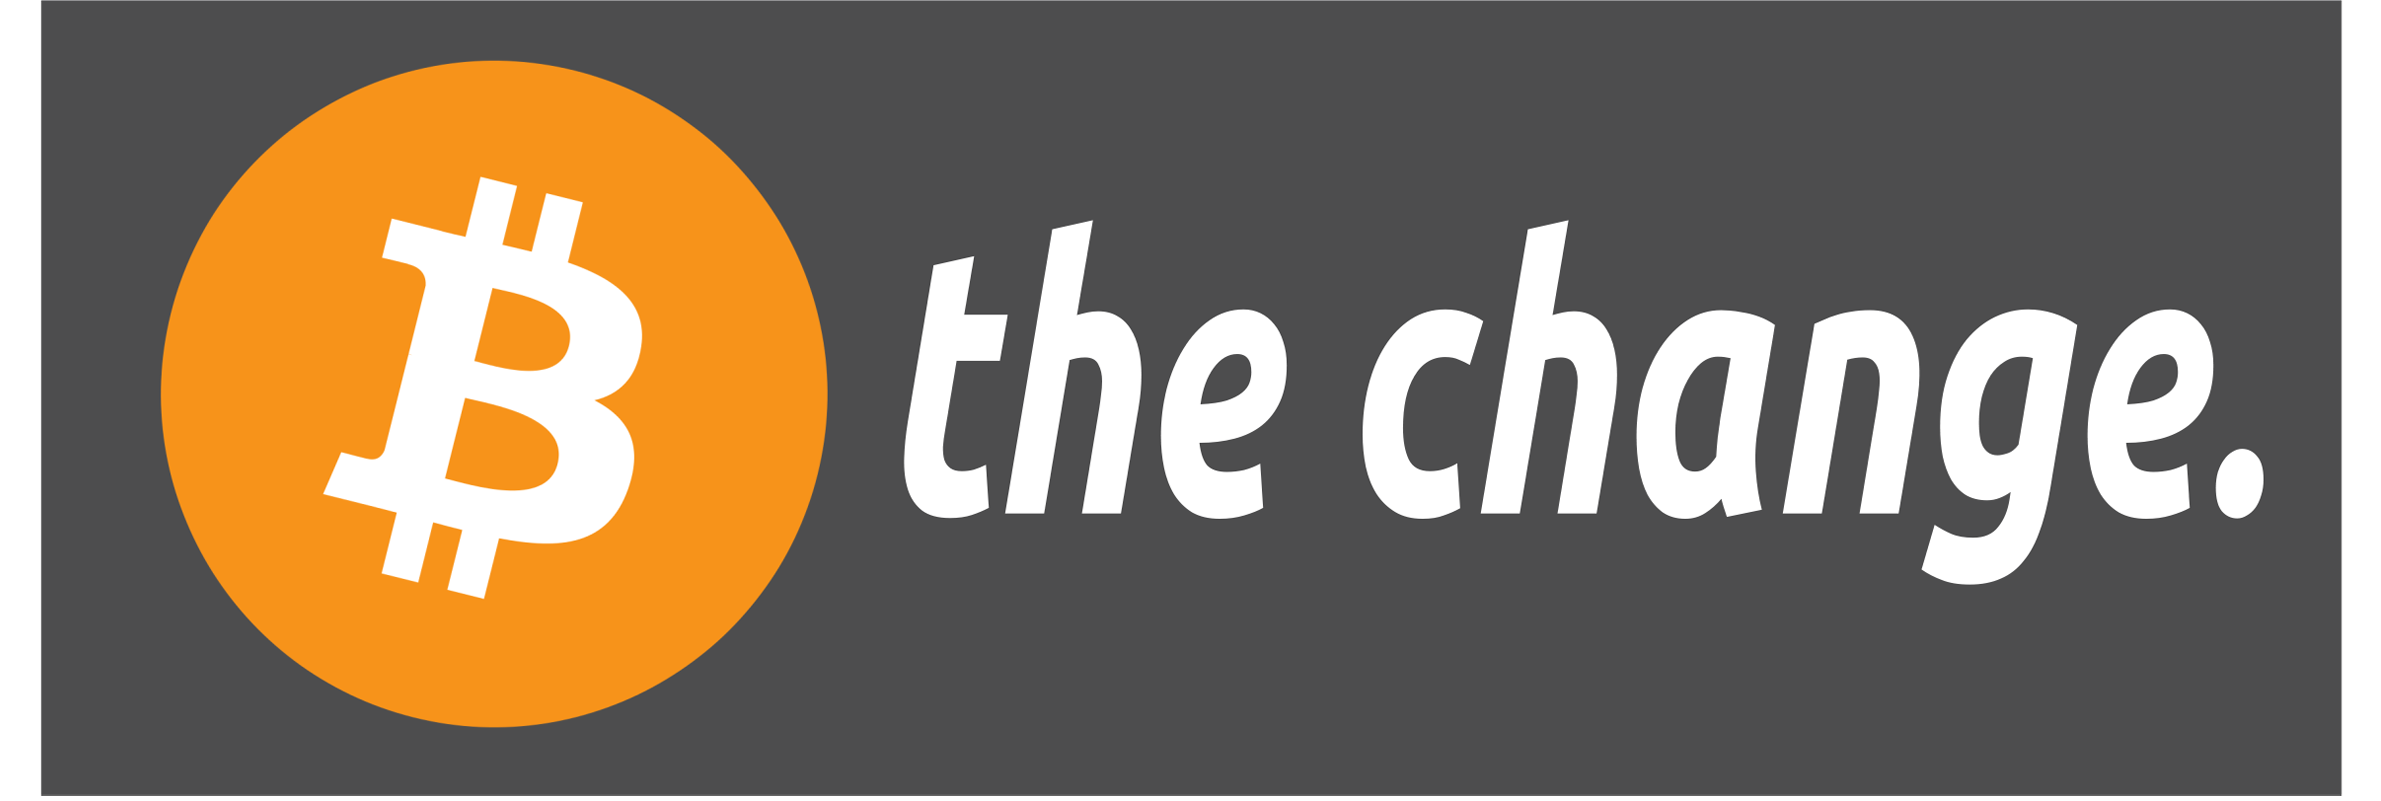 """B the change""-sticker"